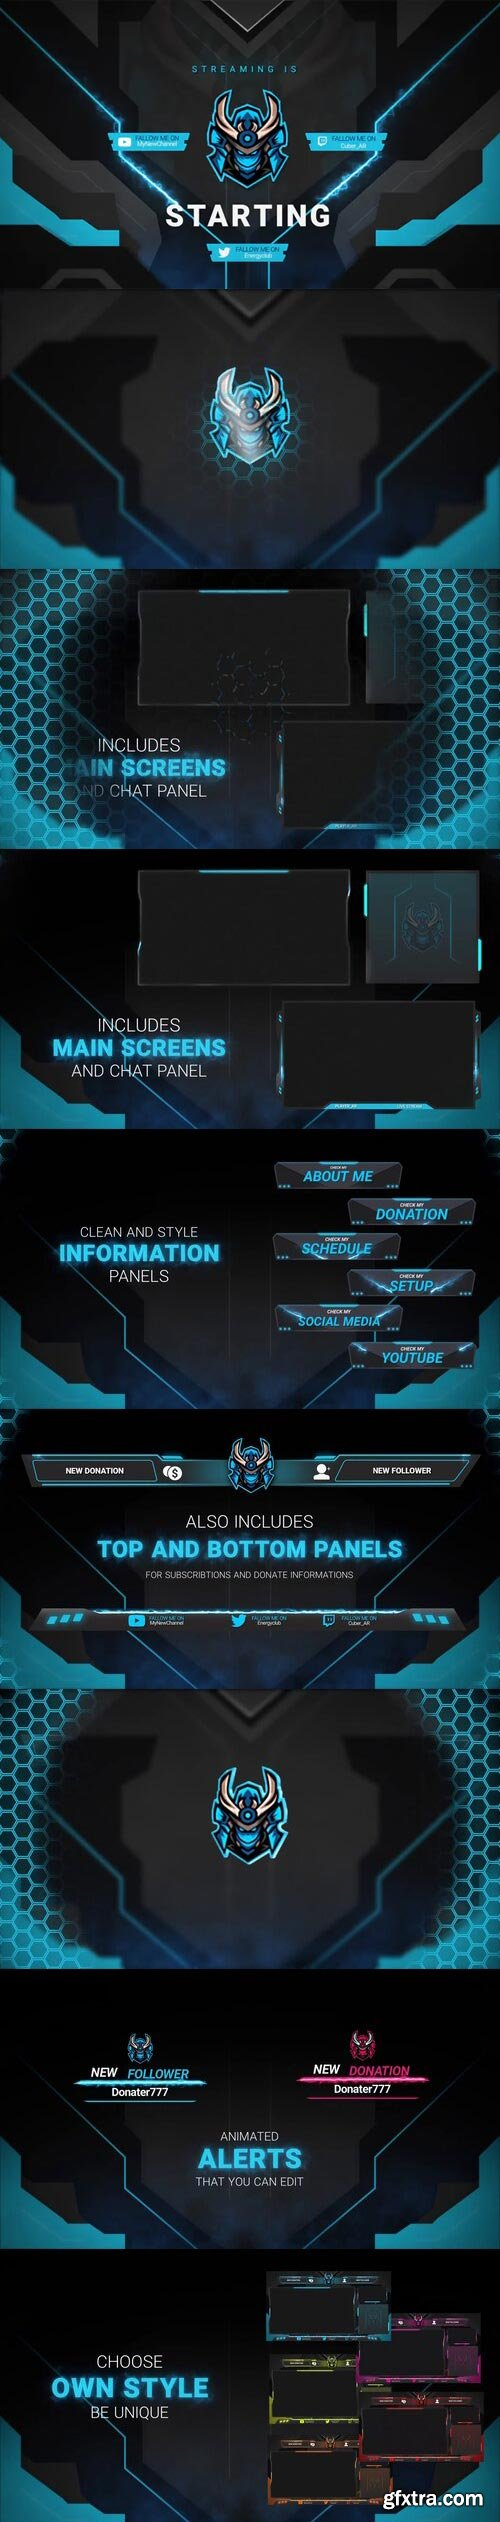 Videohive - Stream Package - 29167425